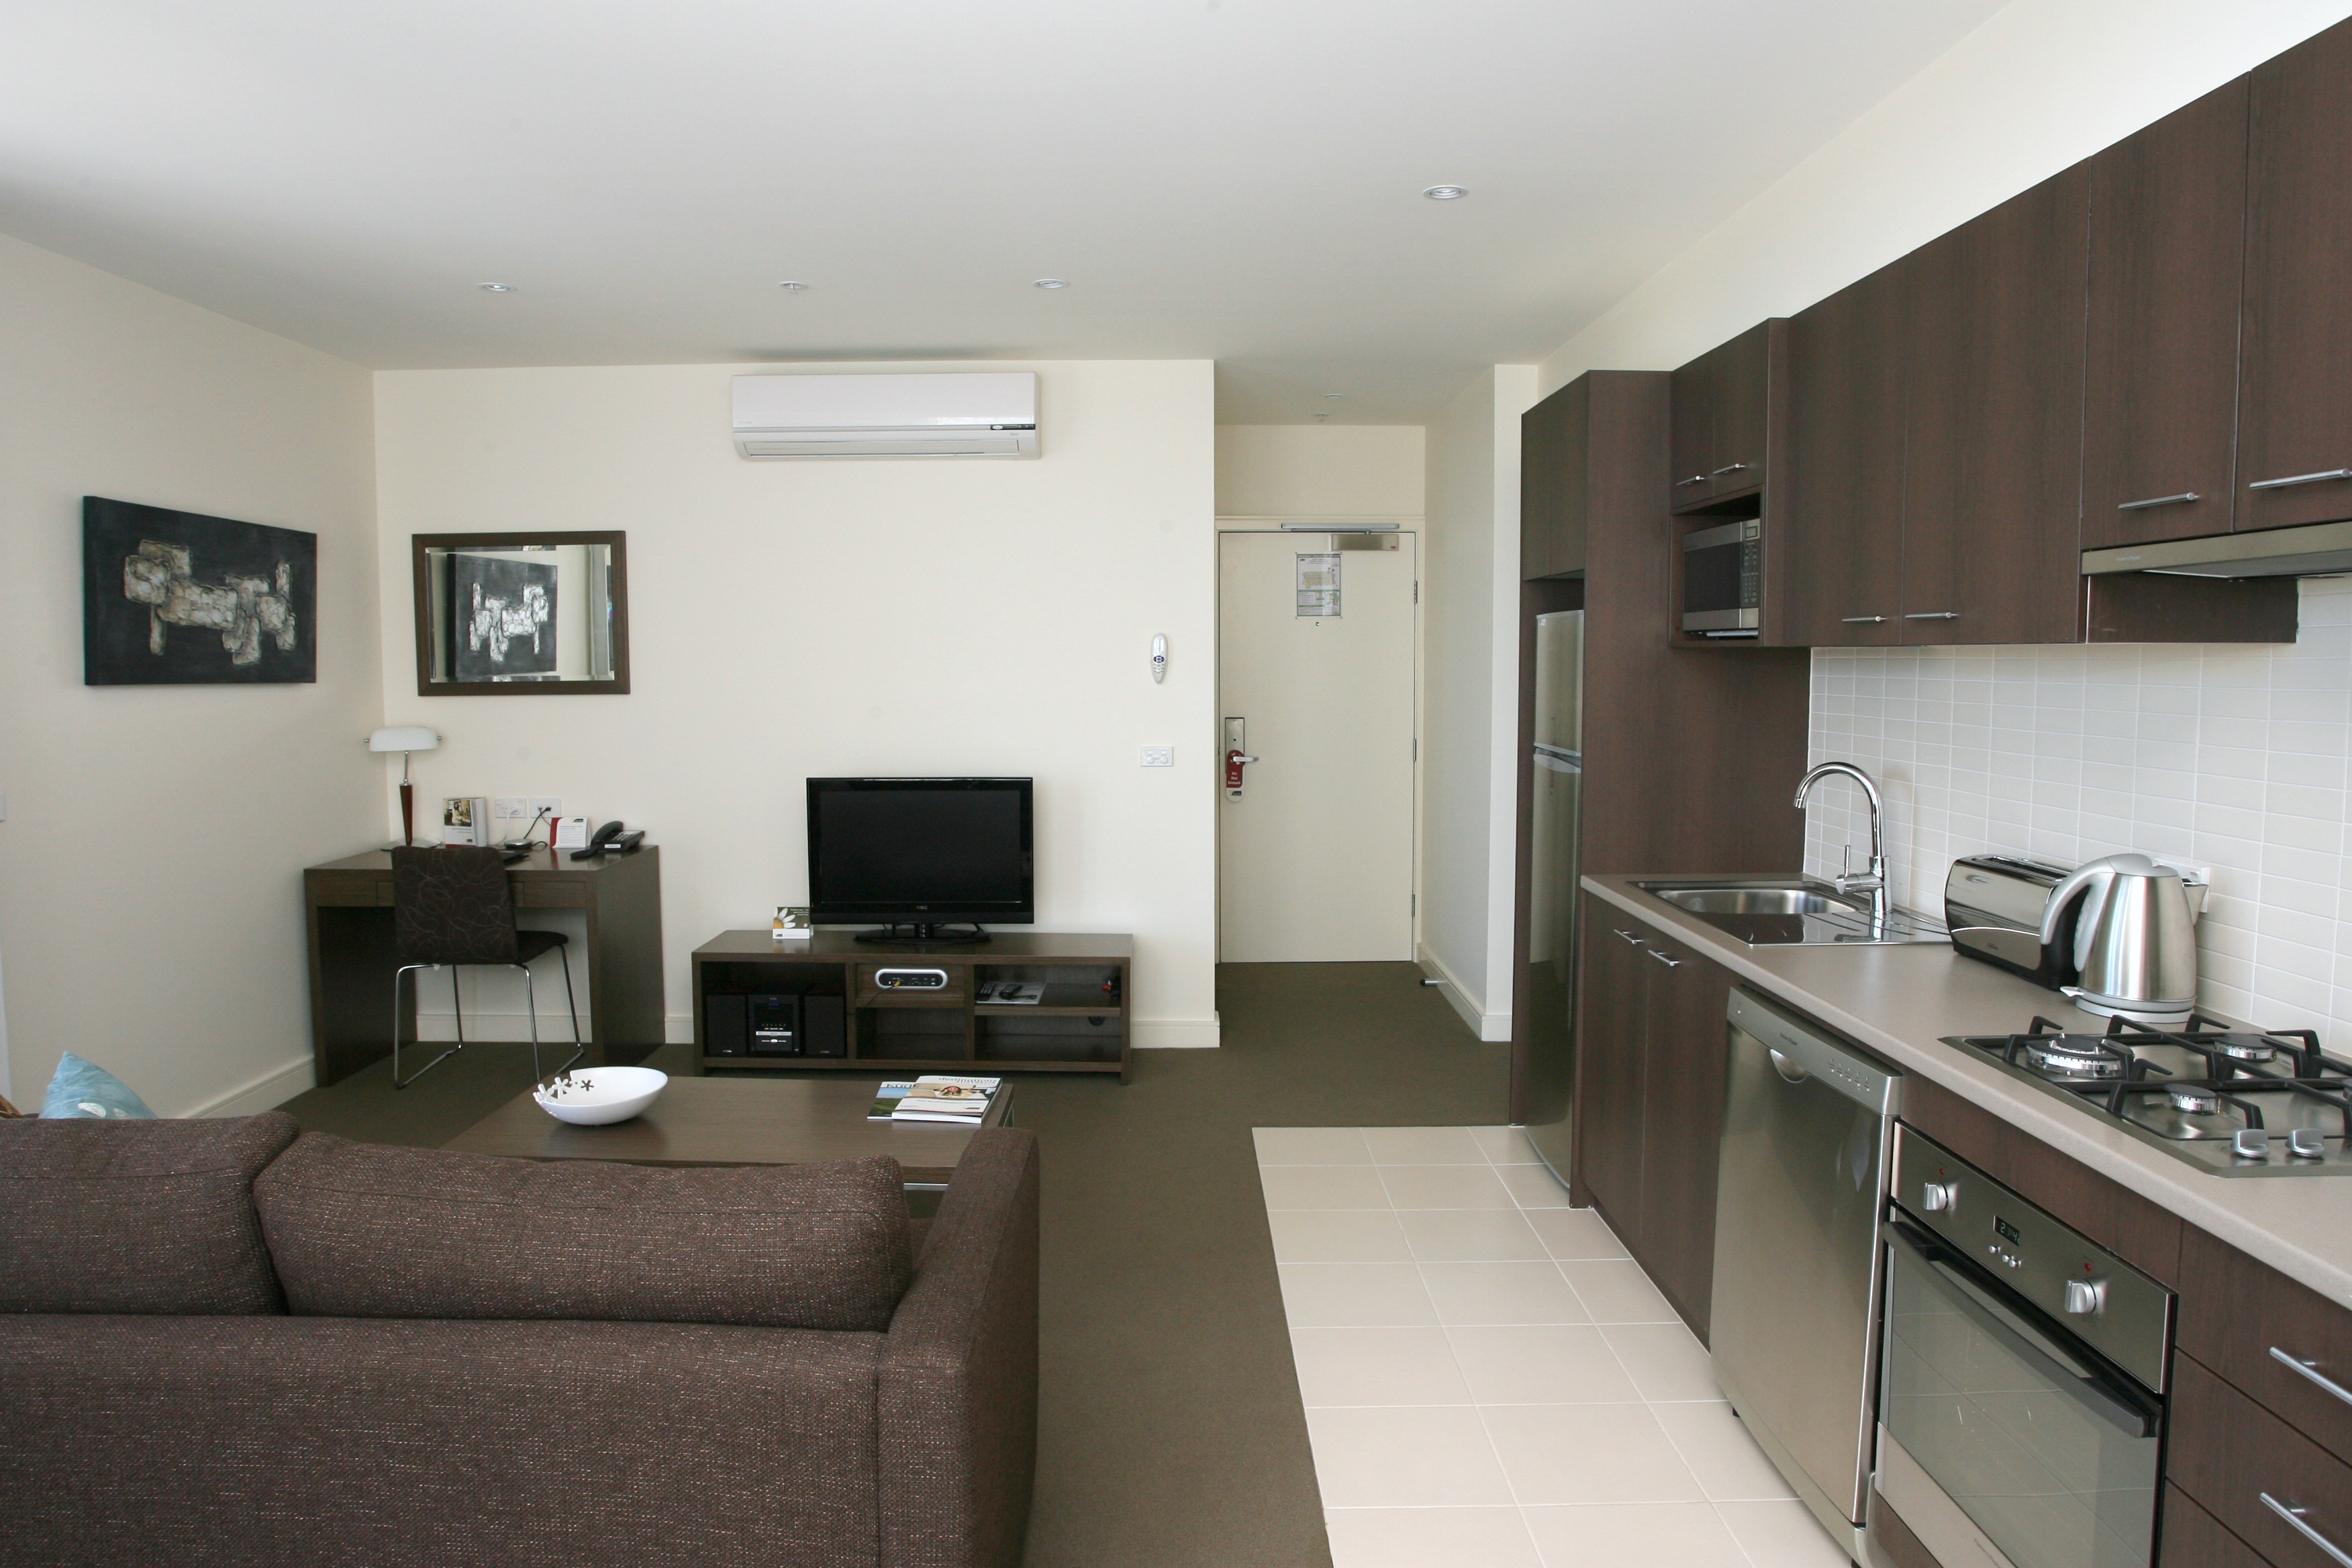 1 bedroom apartment 48 sqm quest ivanhoe kew australia Home furniture rental austin texas